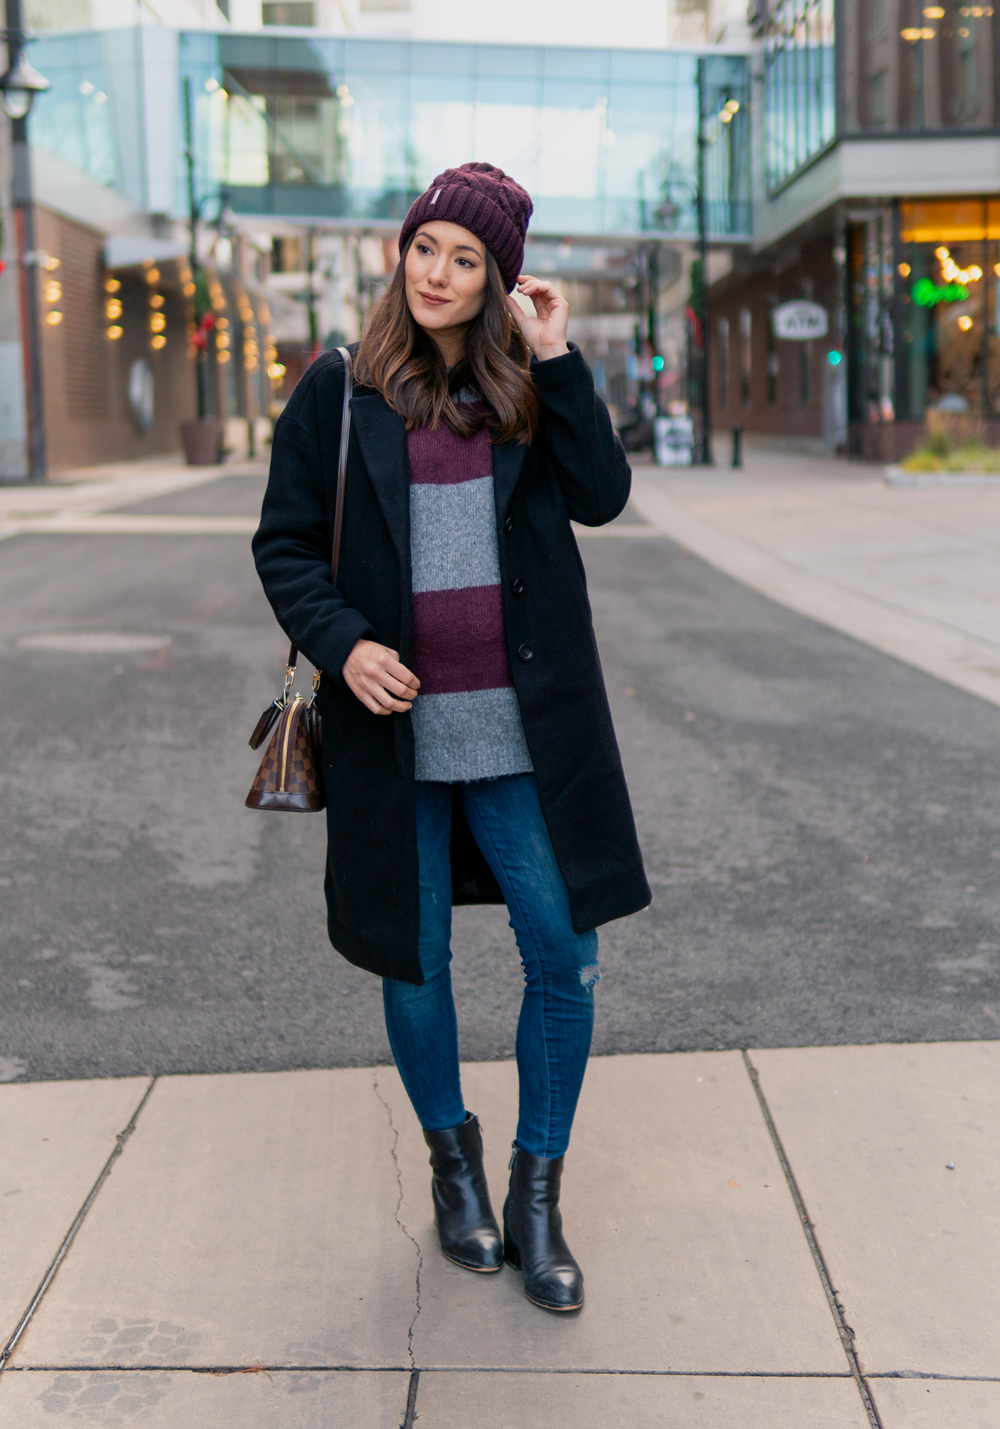 461441bdca2244 Last week I shared a classic winter coat I've had for years, and today I'm  sharing the newest addition to my coat collection. I've been looking for a  great ...